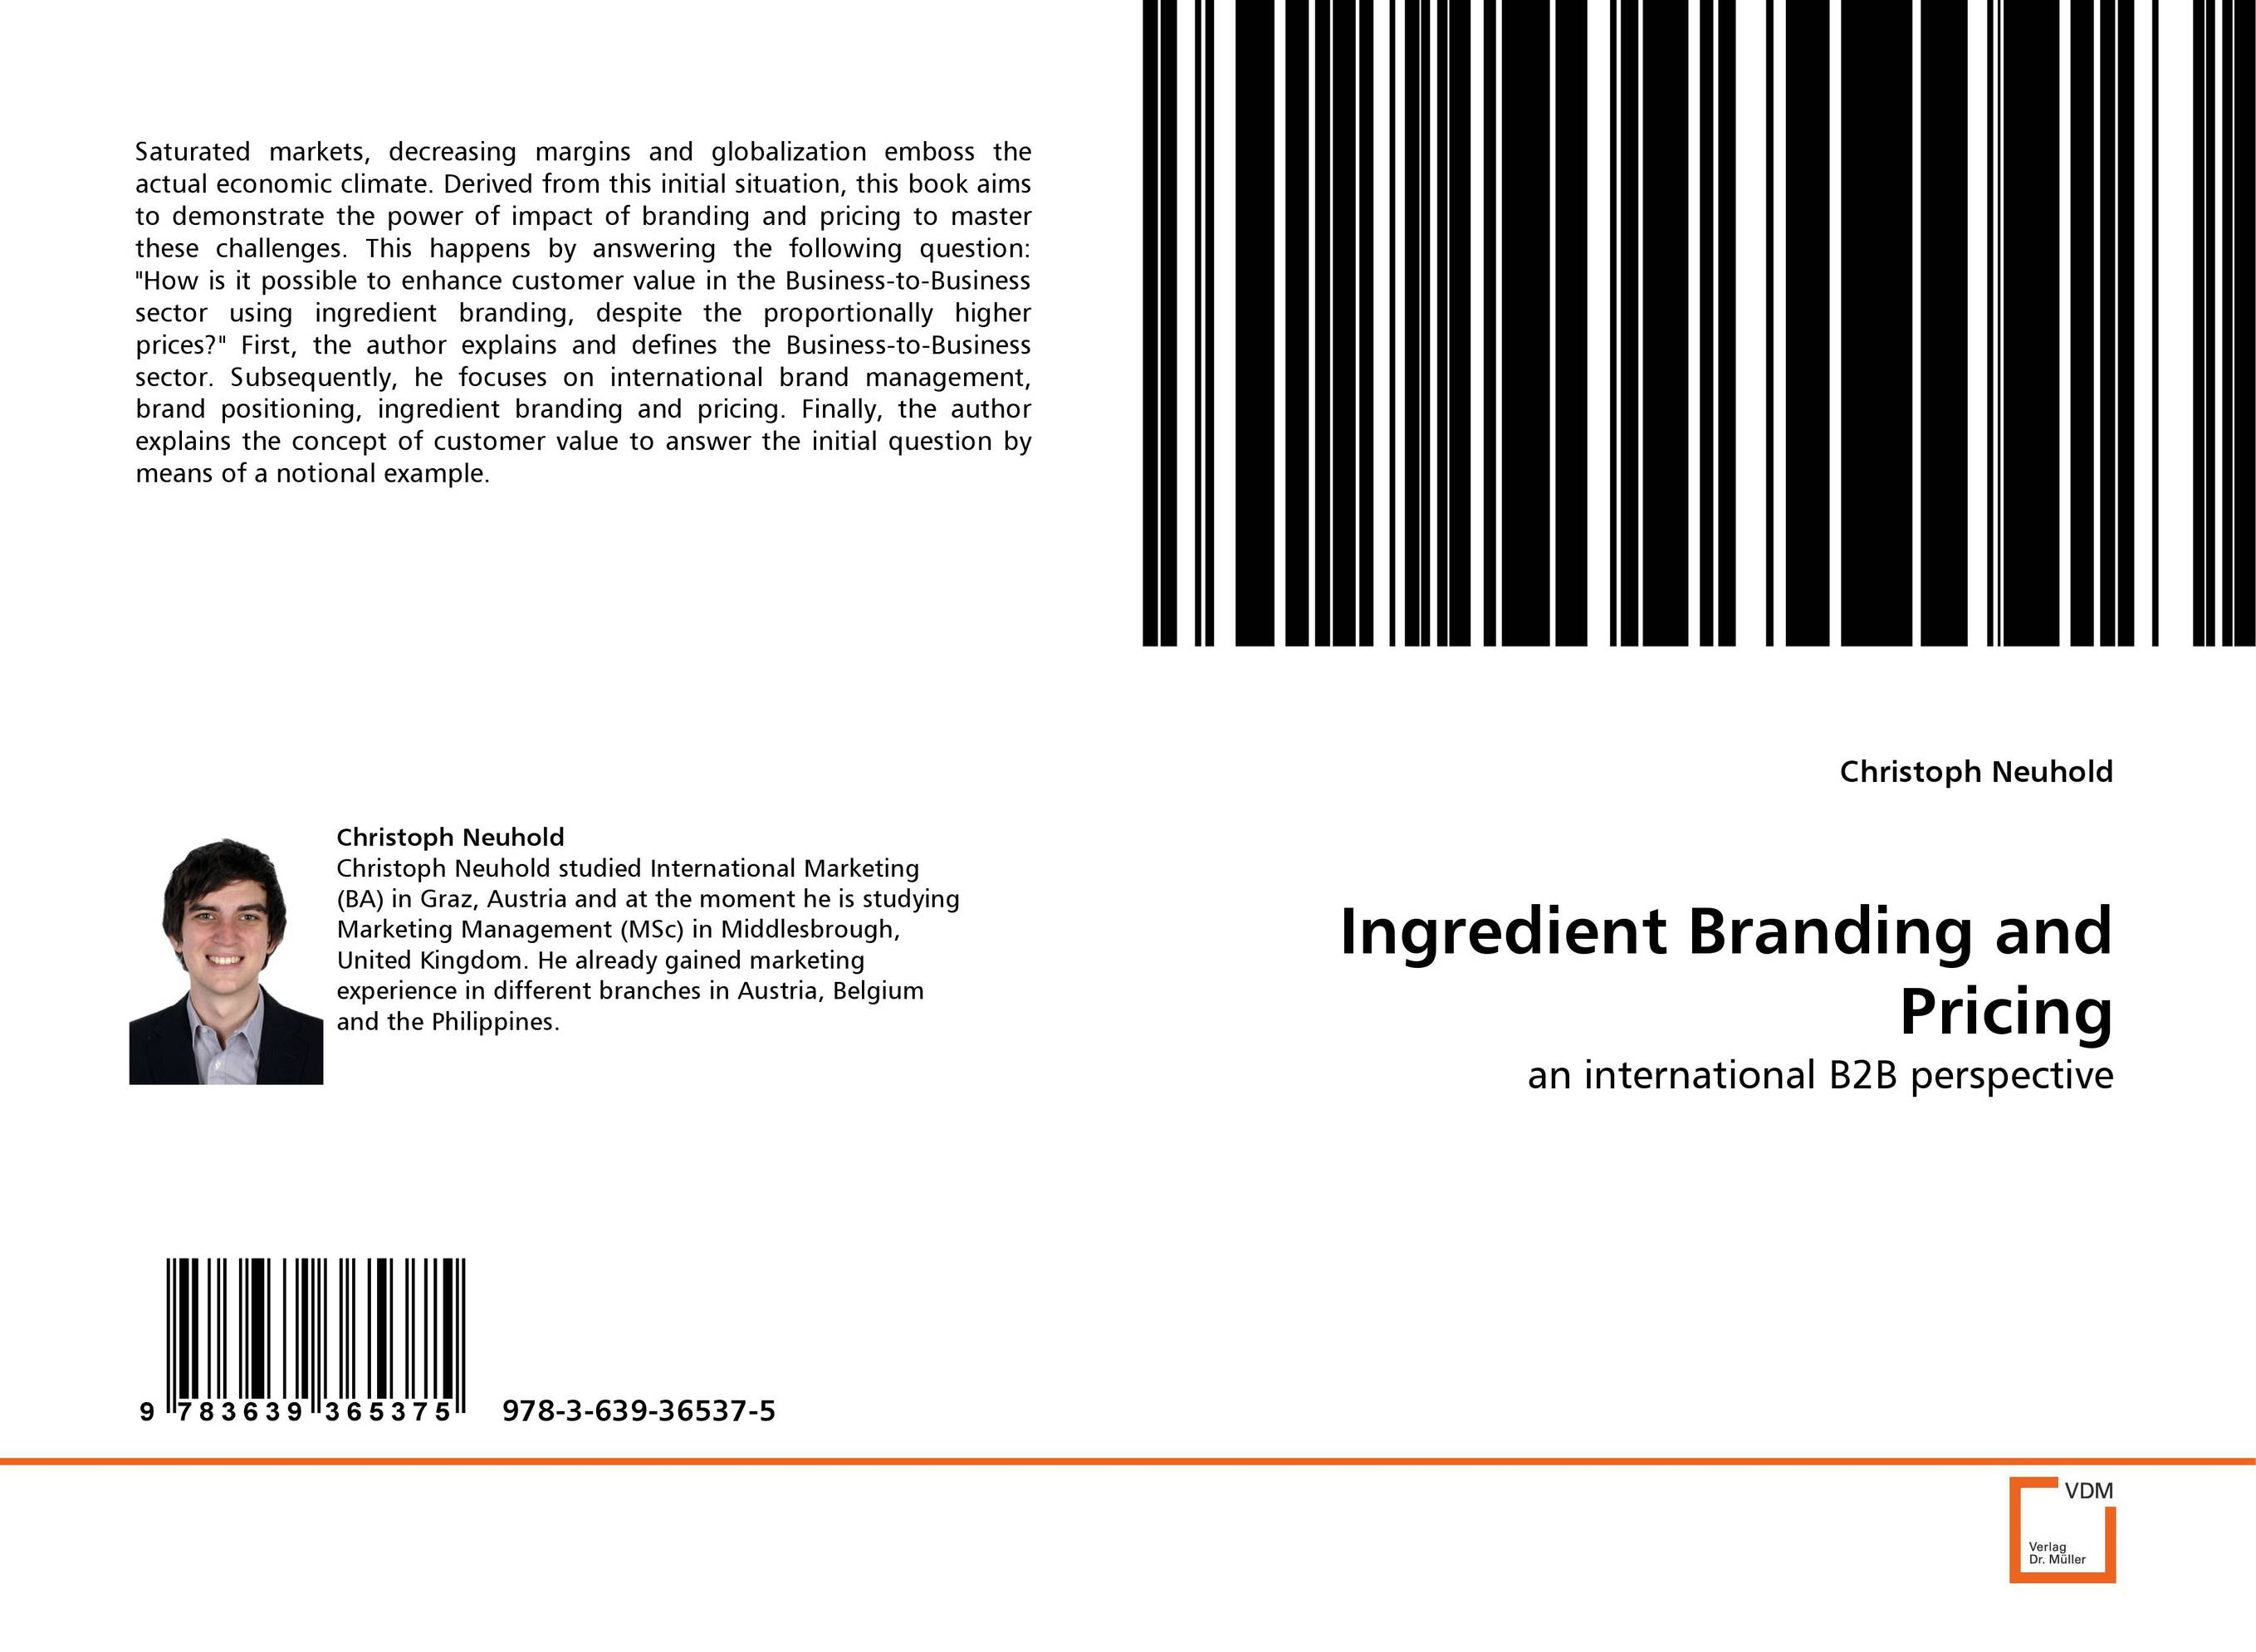 Ingredient Branding and Pricing